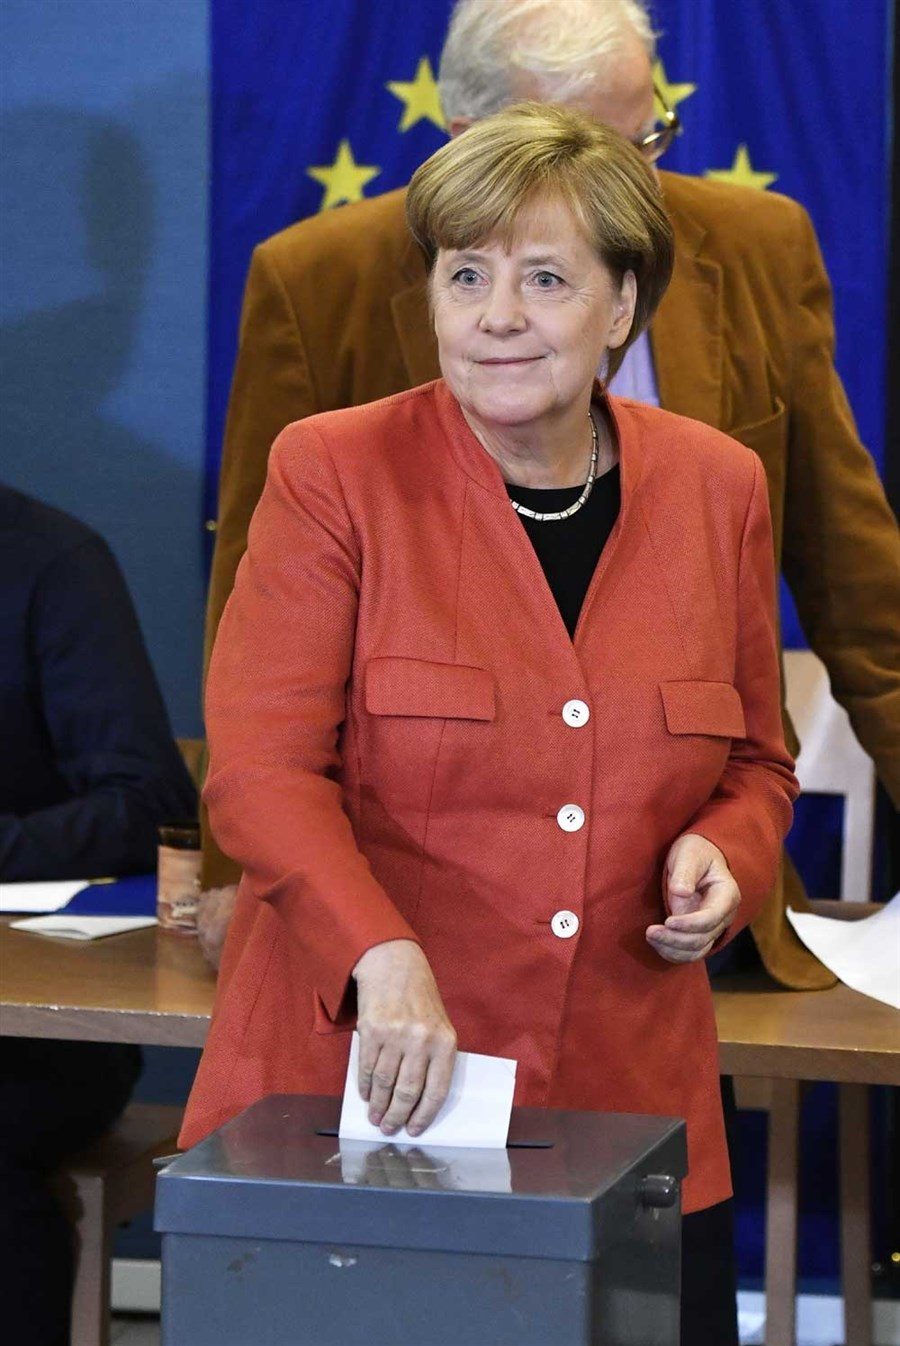 Exit polls put Merkel on course for 4th term